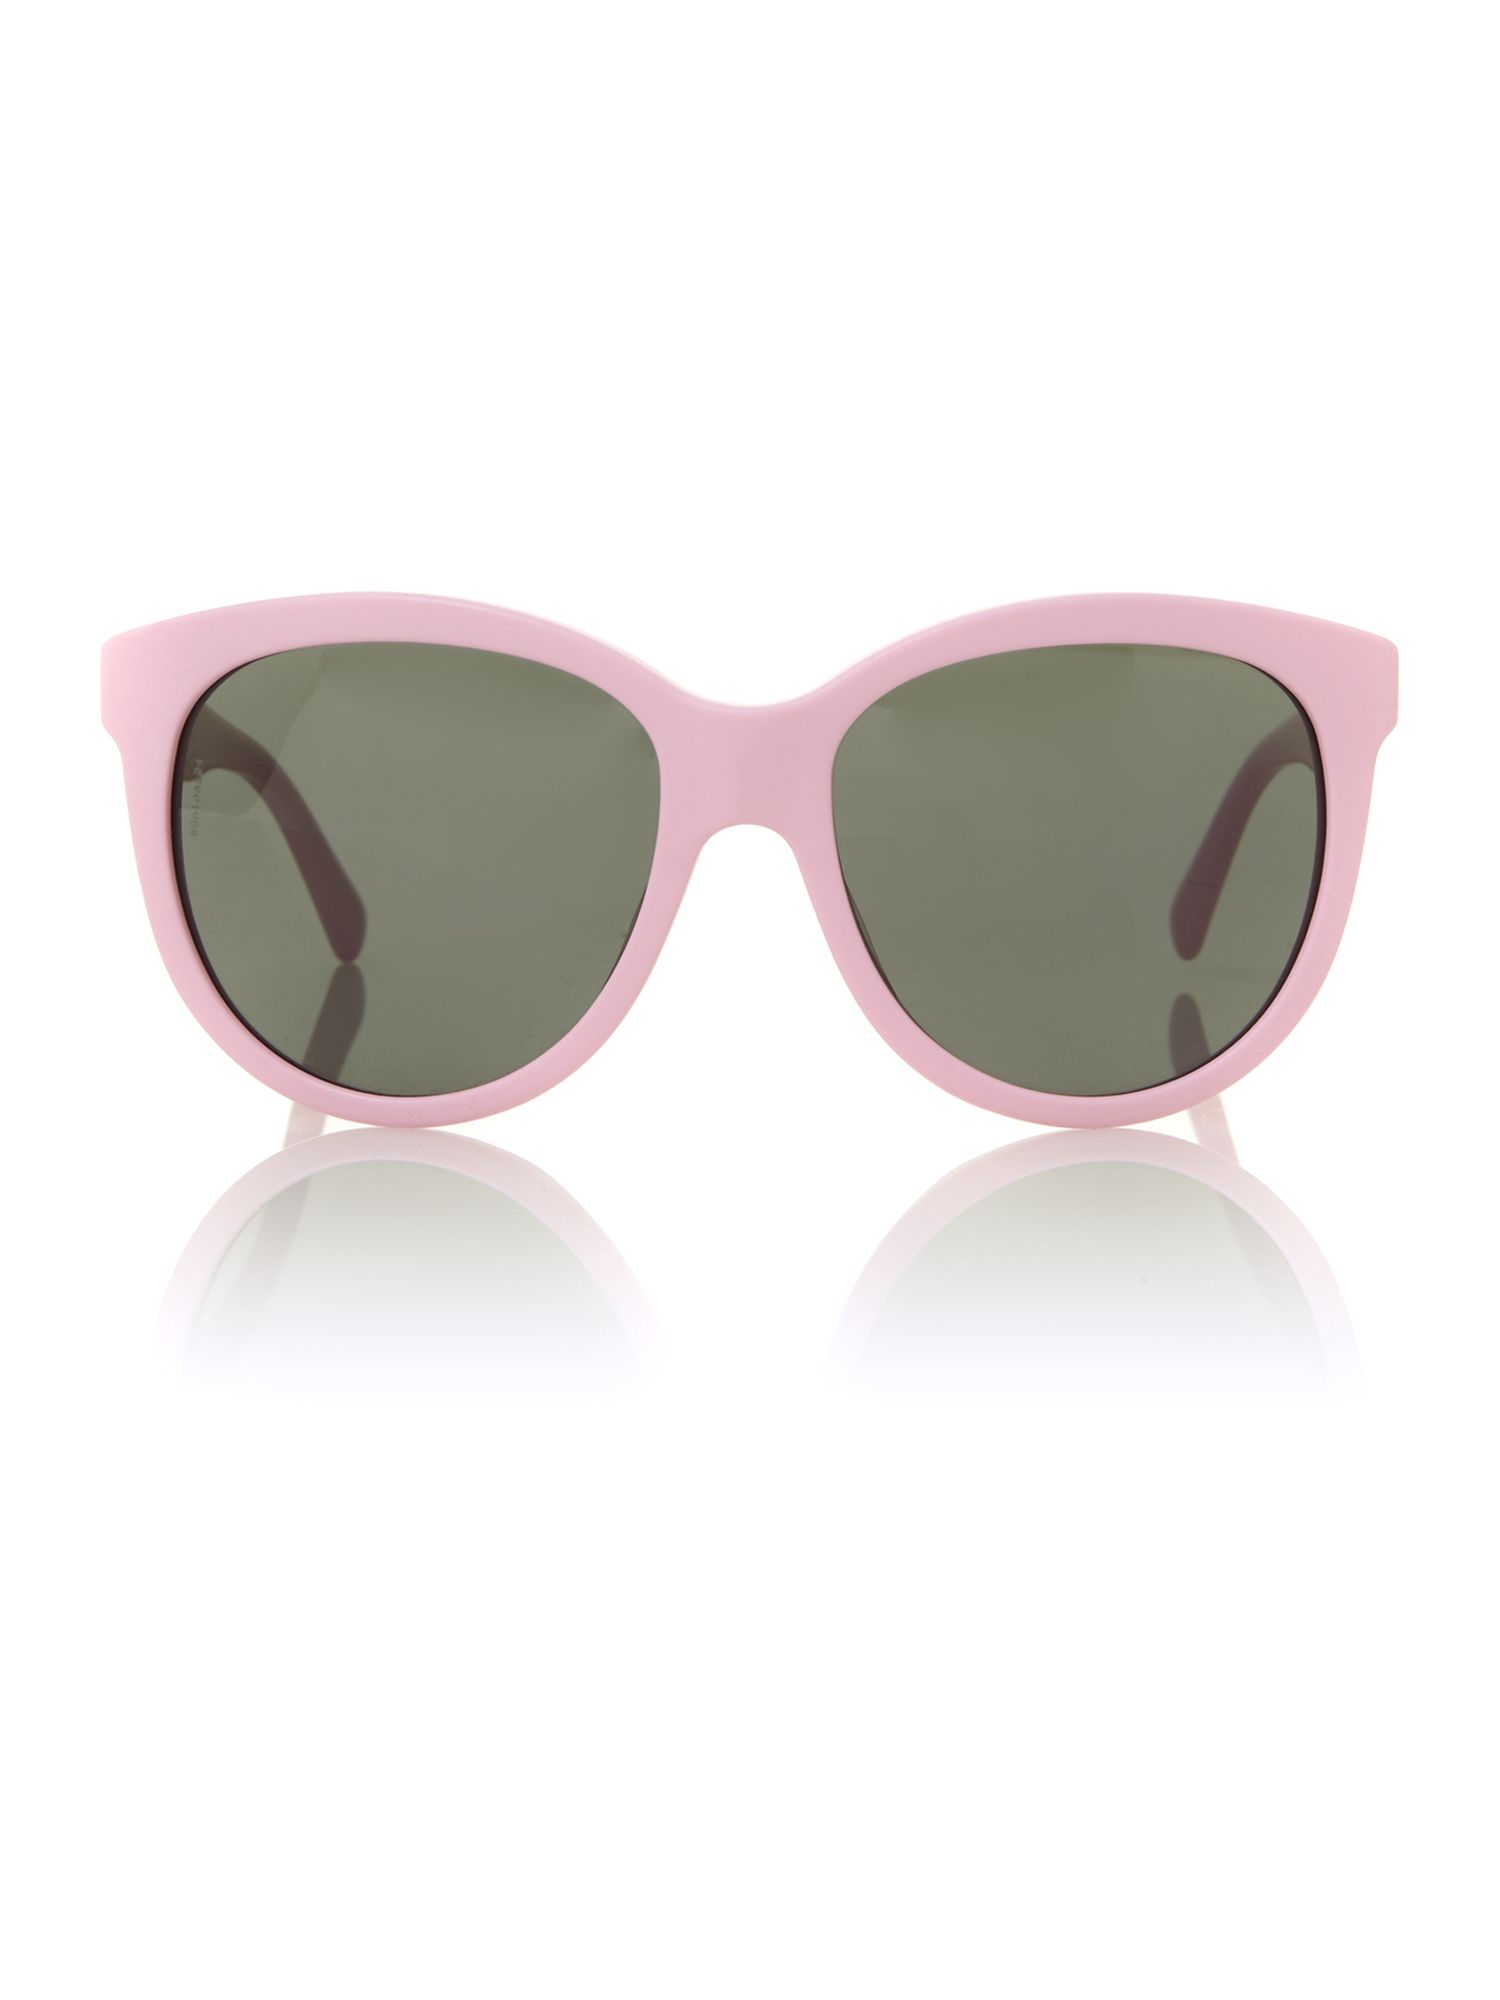 Ladies DG4149 Pink Sunglasses